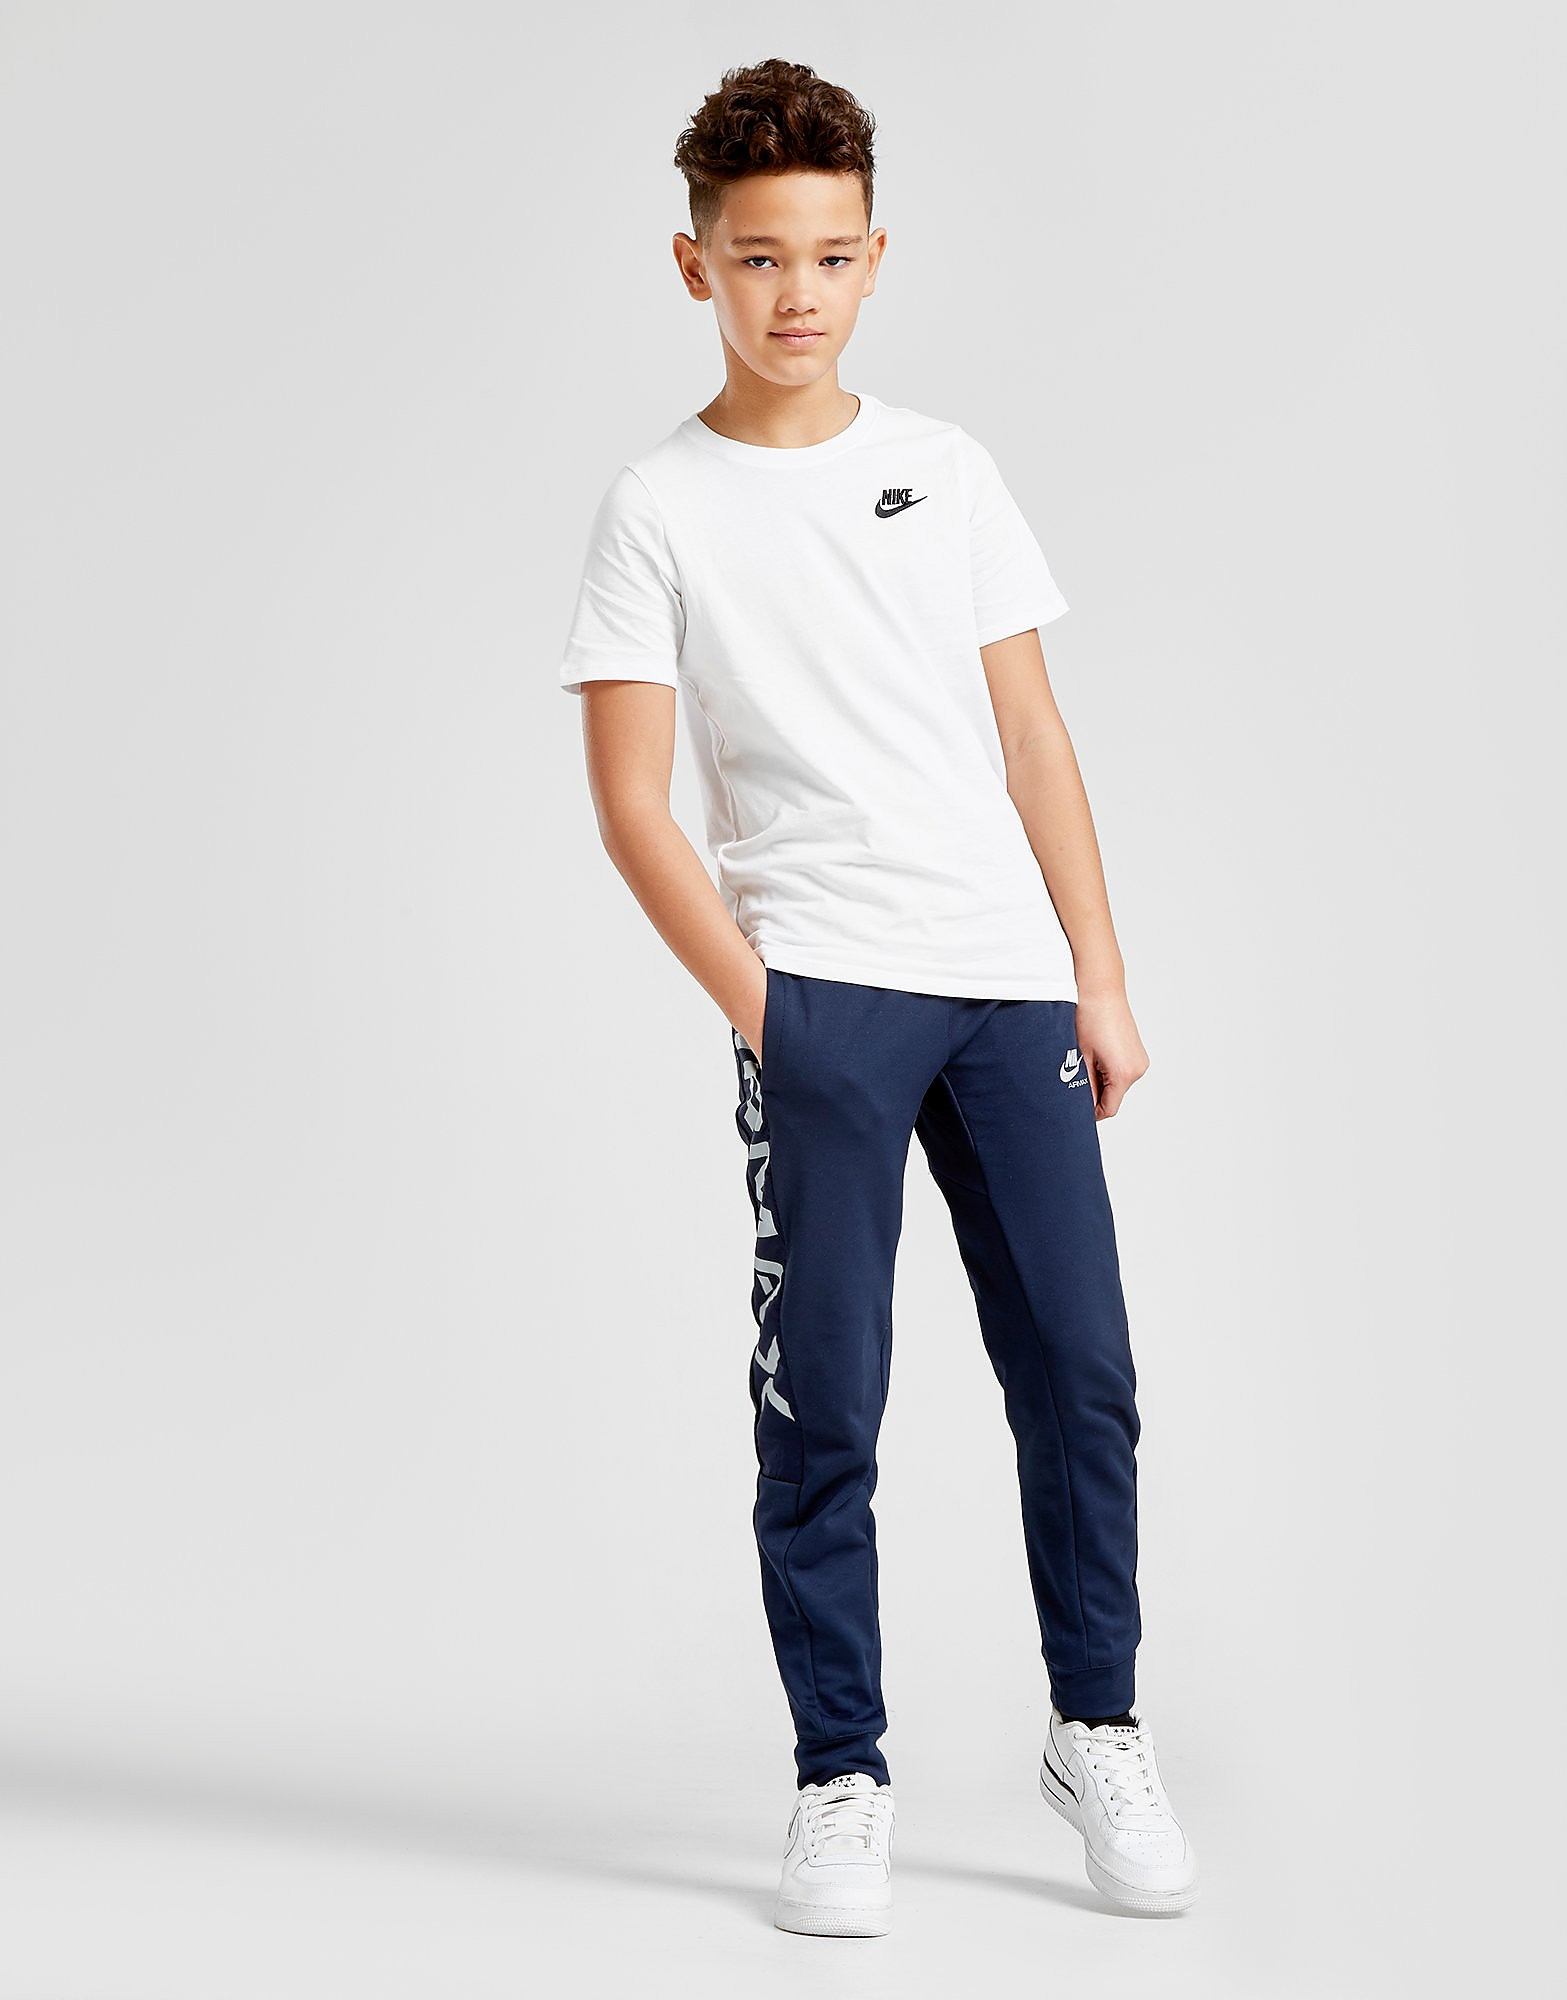 Nike T-shirt Franchise Junior